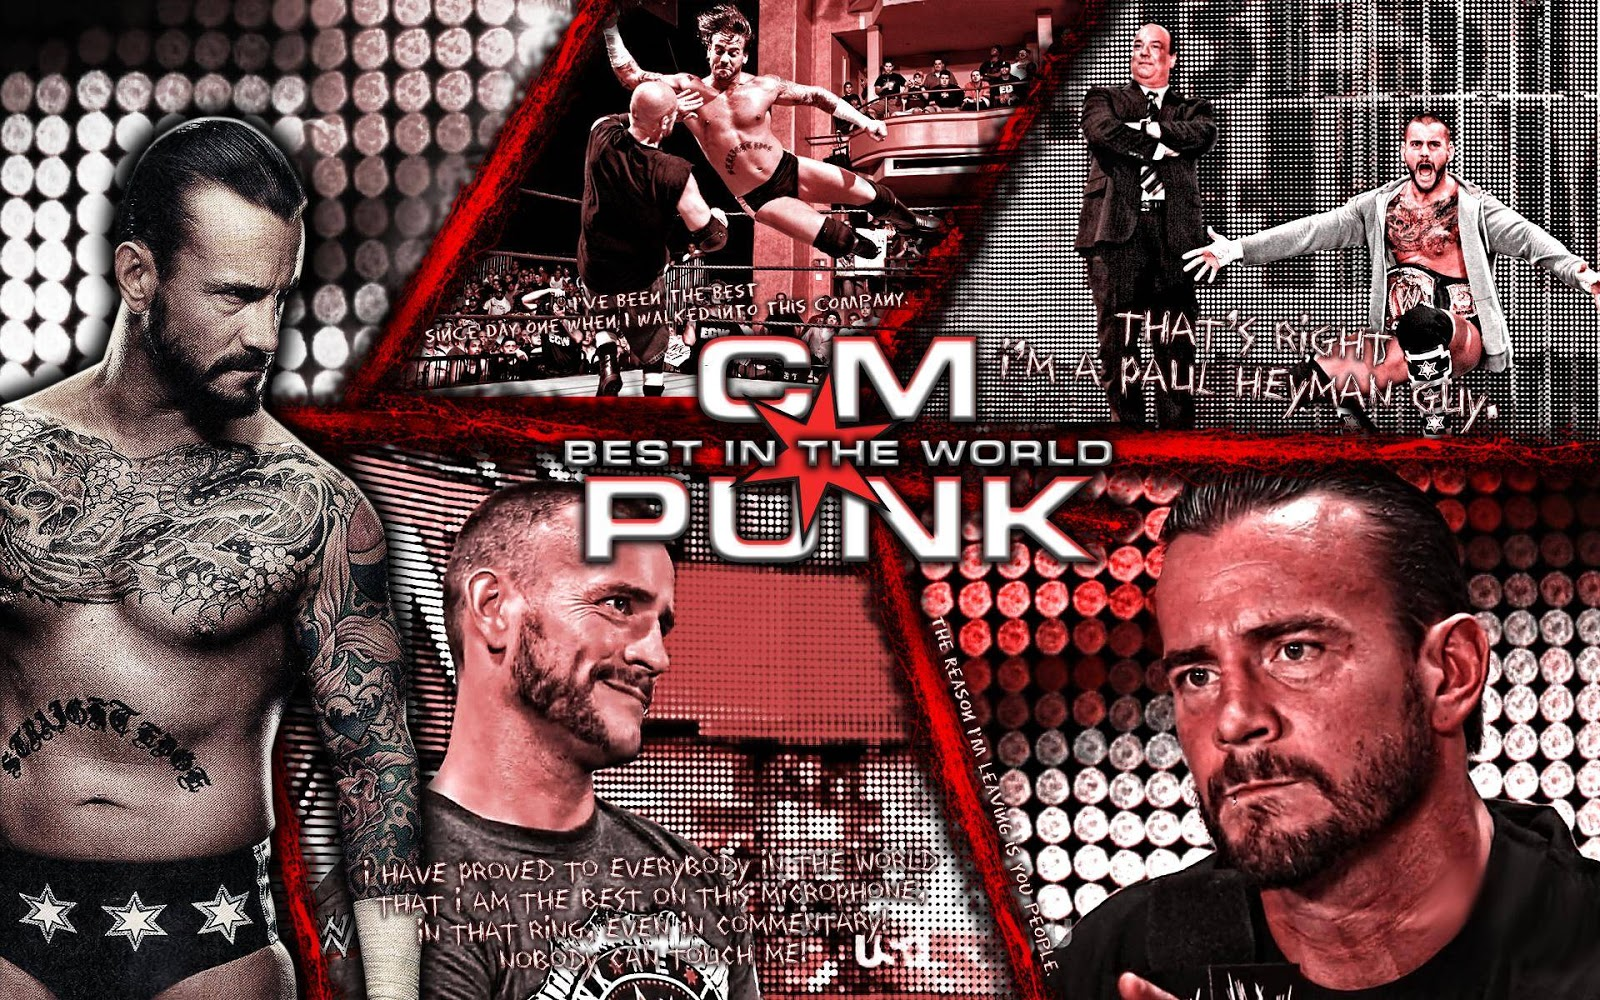 http://3.bp.blogspot.com/-0jVSwDtNjuM/ULUpsgfs5fI/AAAAAAAABL0/zDyclnsnLgo/s1600/cm_punk_best_in_the_world__2012__wallpaper_by_dancyhercules3-d5flmgo.jpg